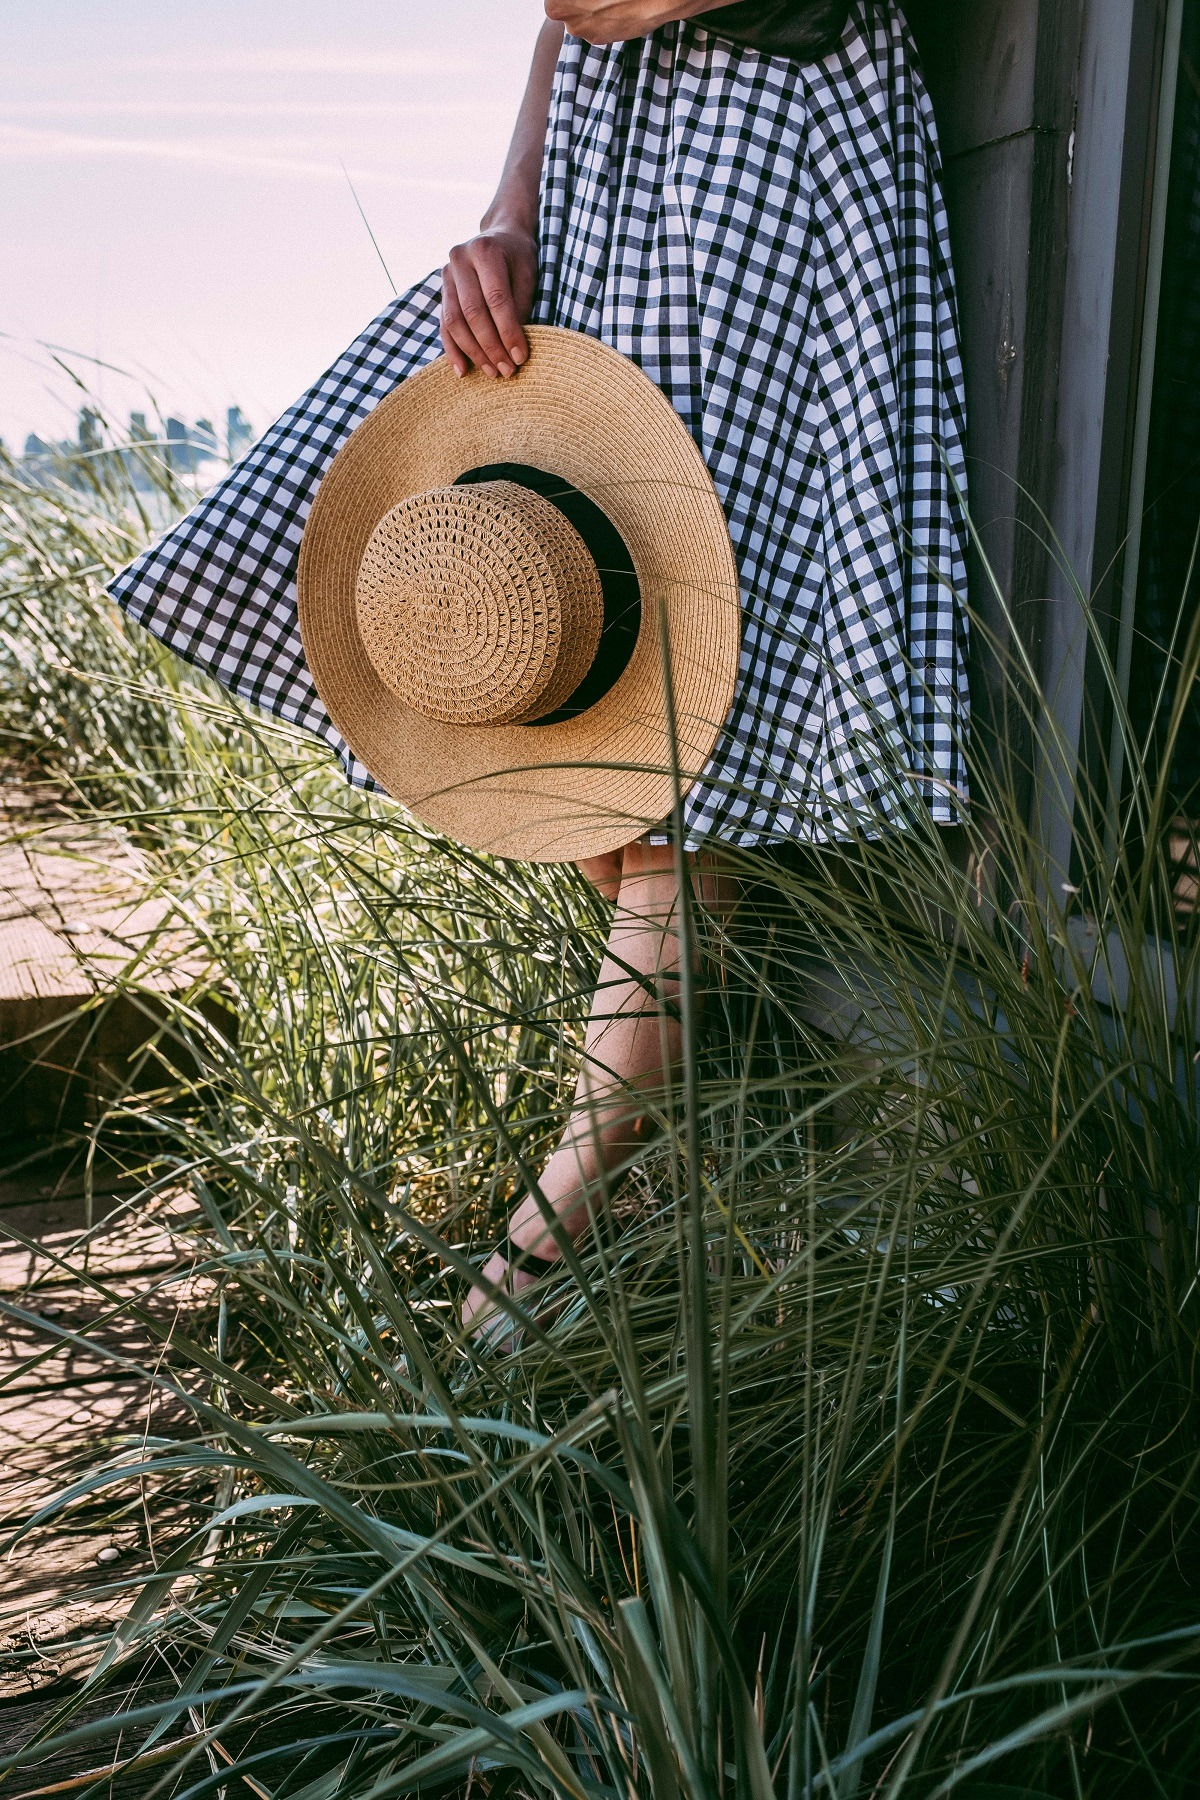 straw hat and gingham dress